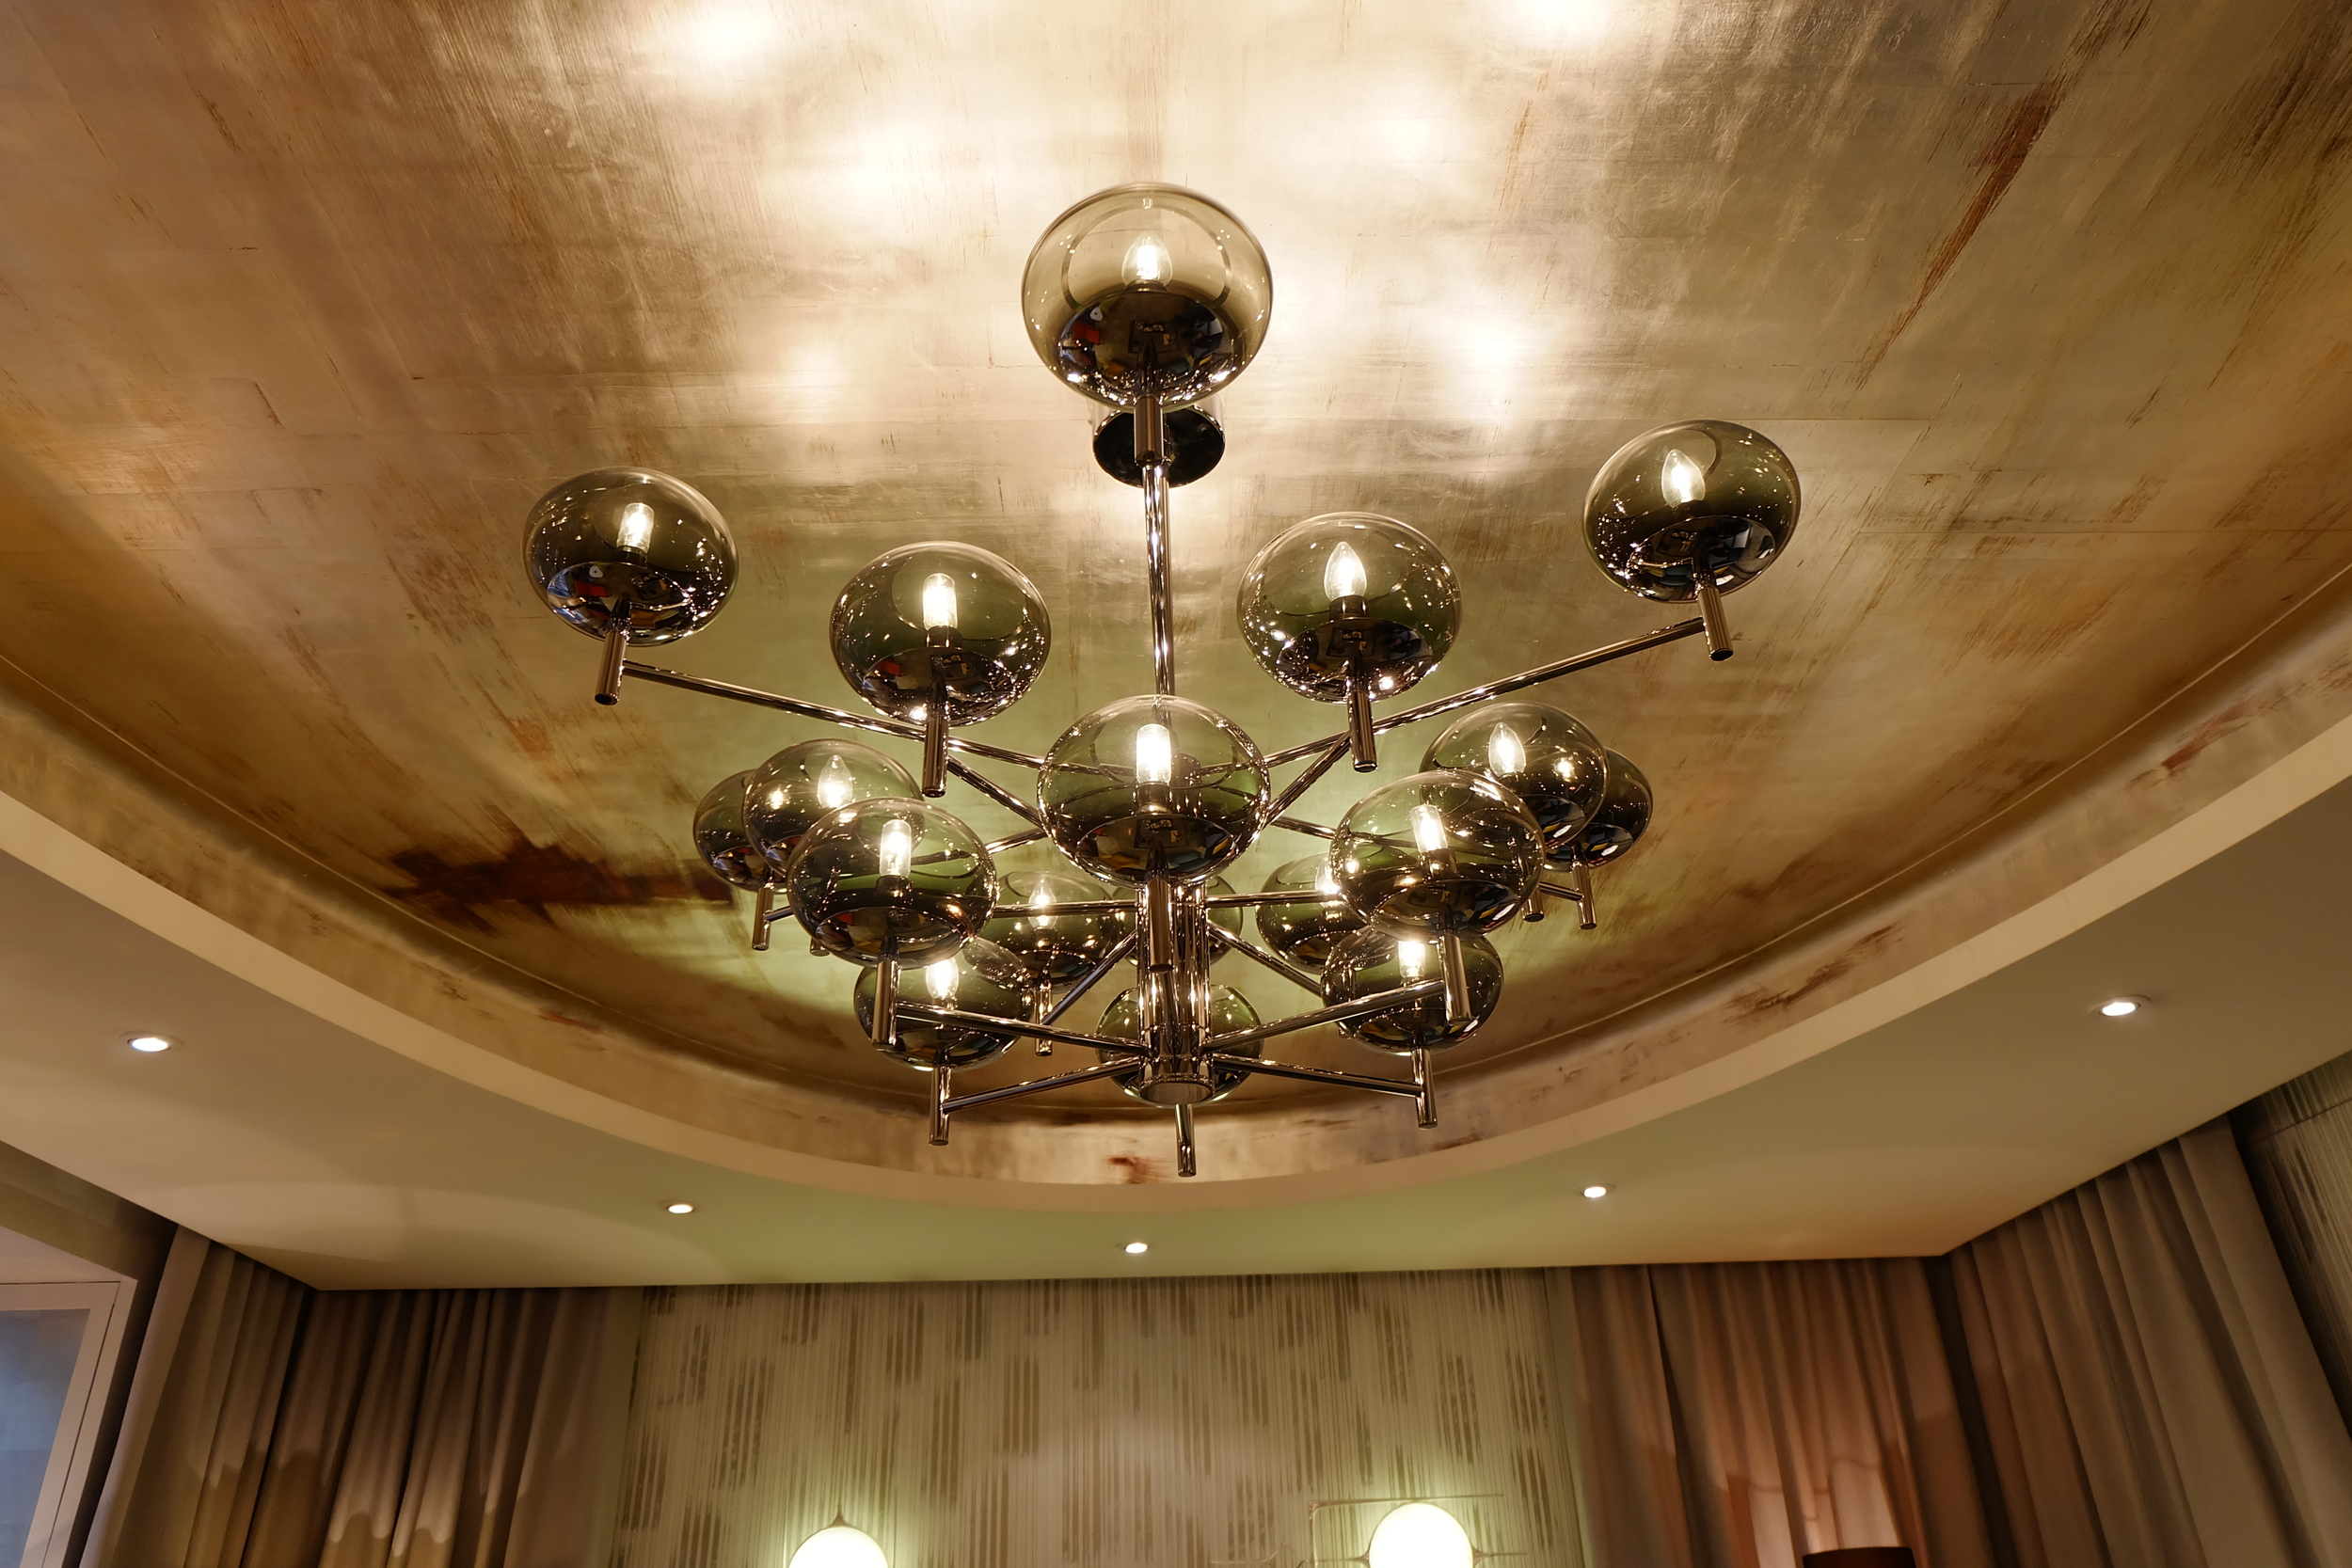 Maison & Objet 2016 Highlights - Gold leaf ceiling is a perfect background for contemporary lighting fixture in shiny metallics and glass | MSH Agency